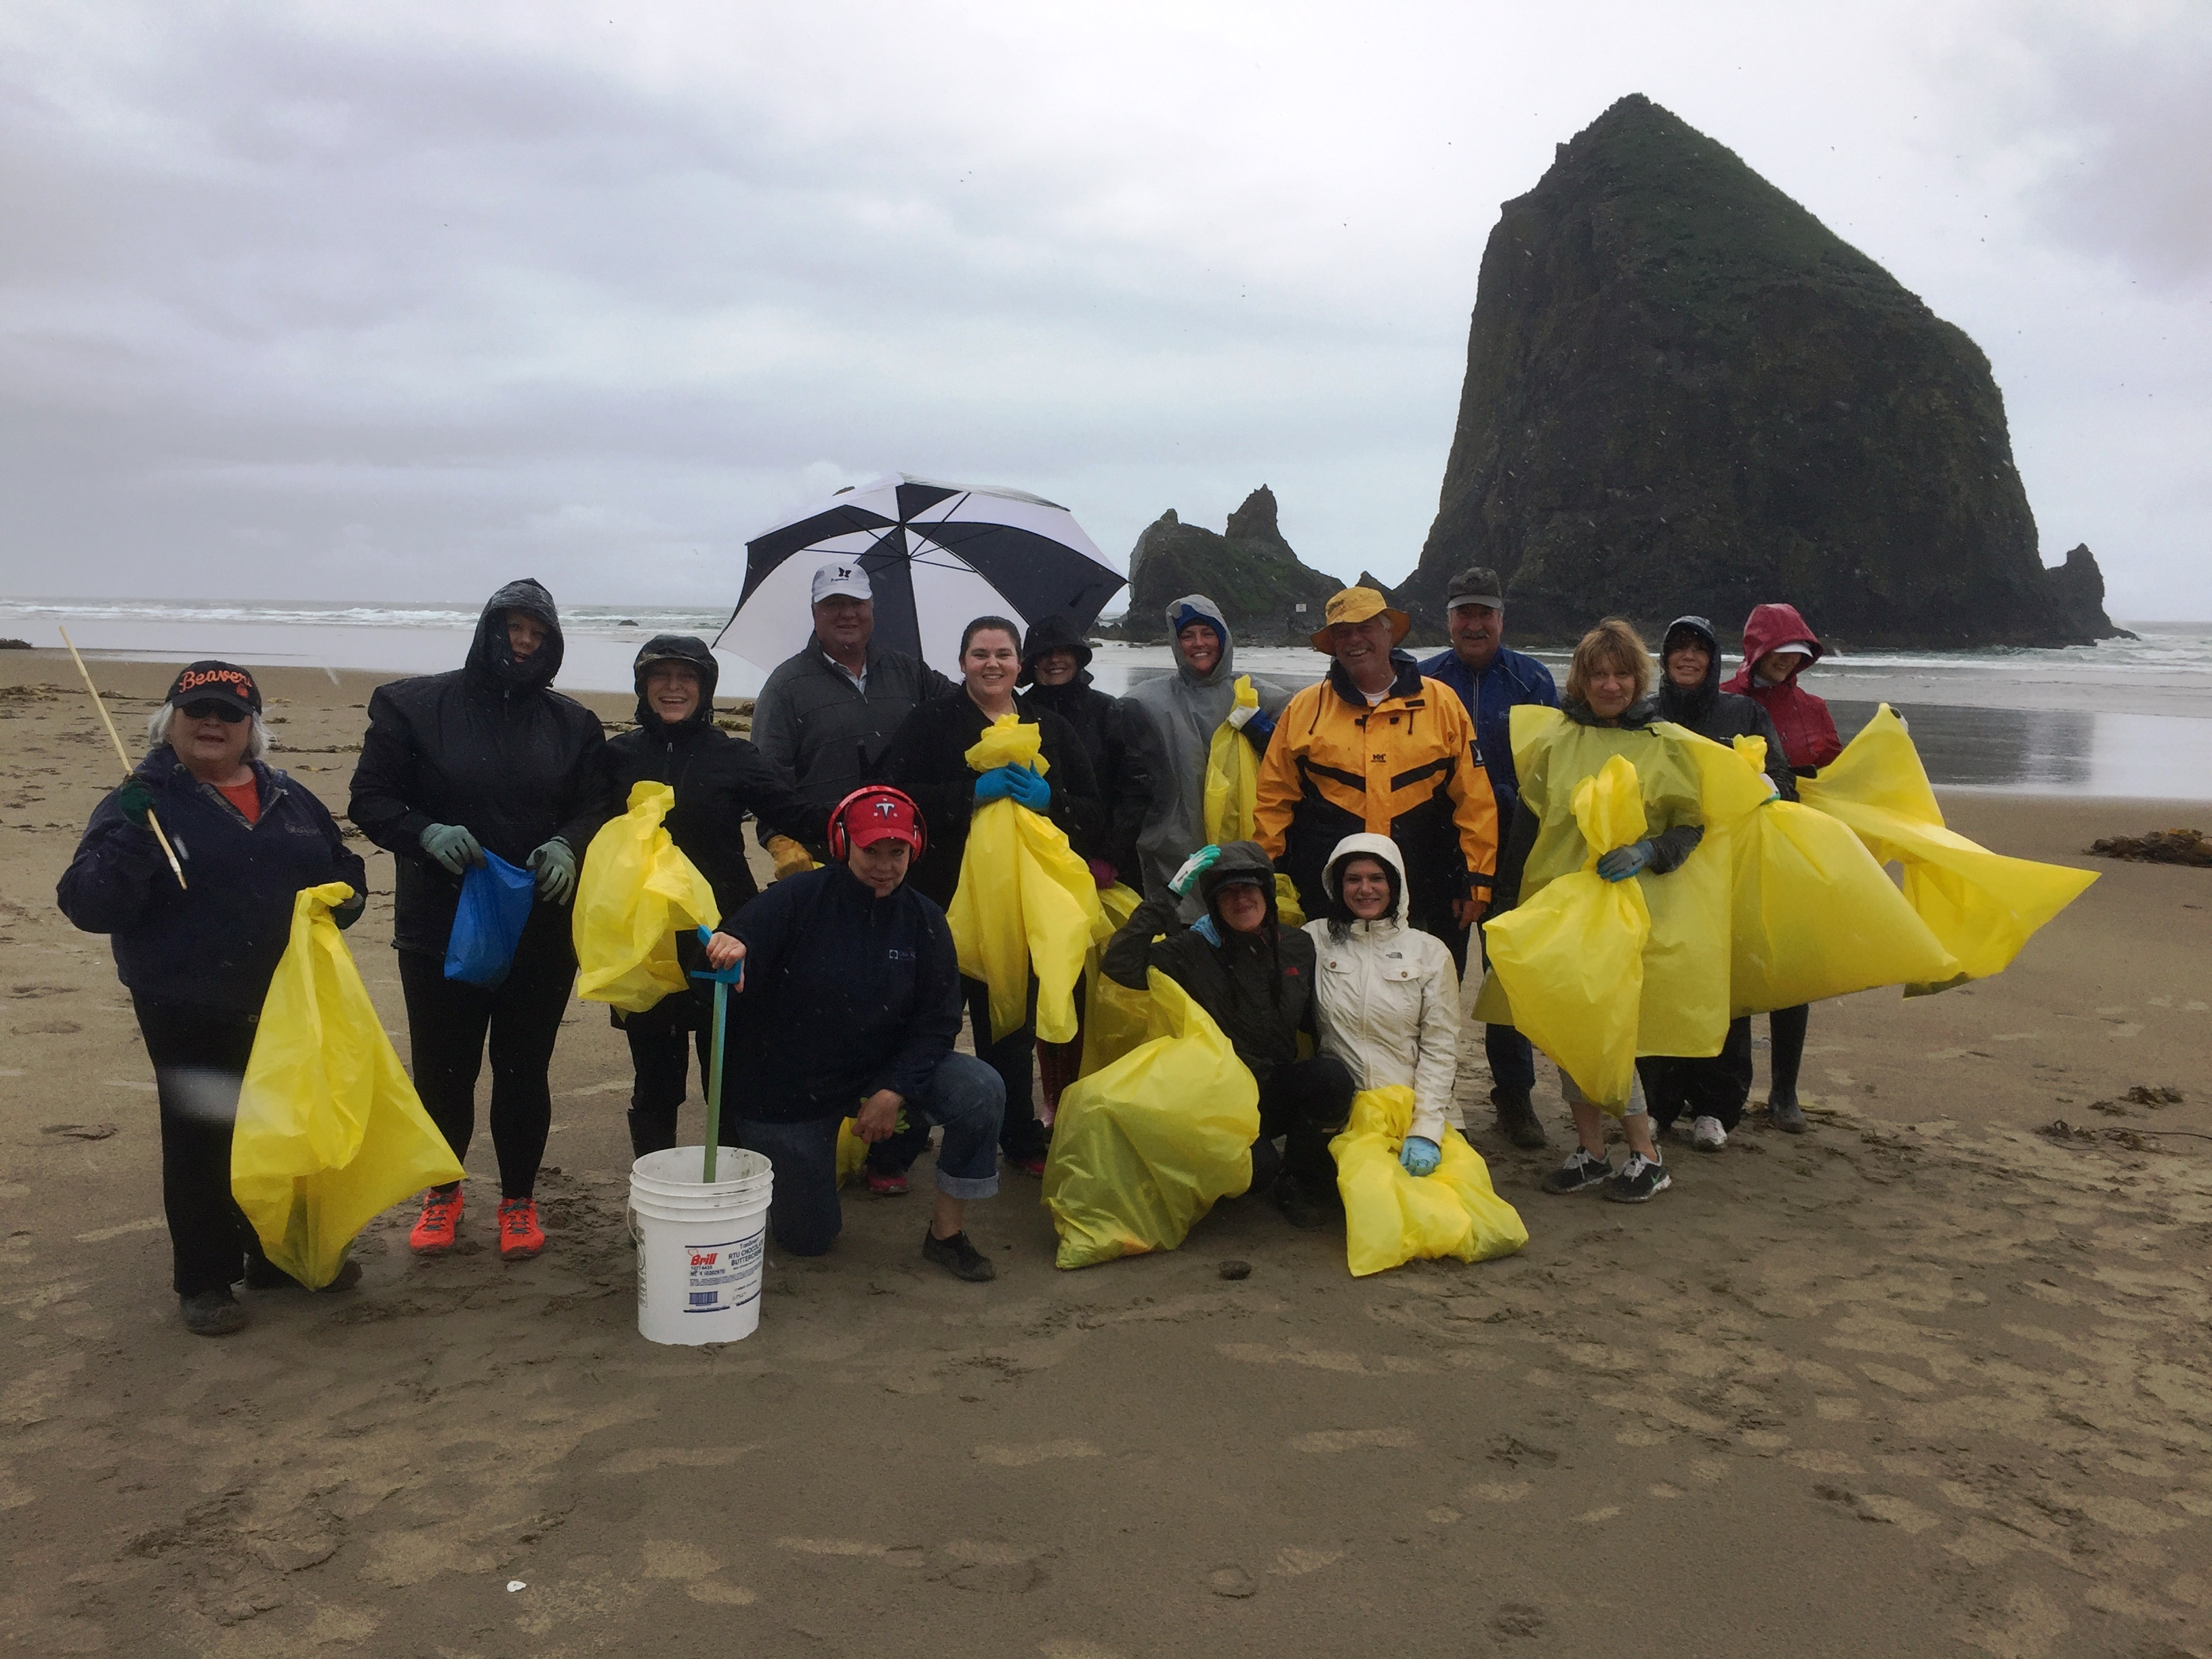 Community Service Day 2017 - Clean up Crew on the Beach (1)